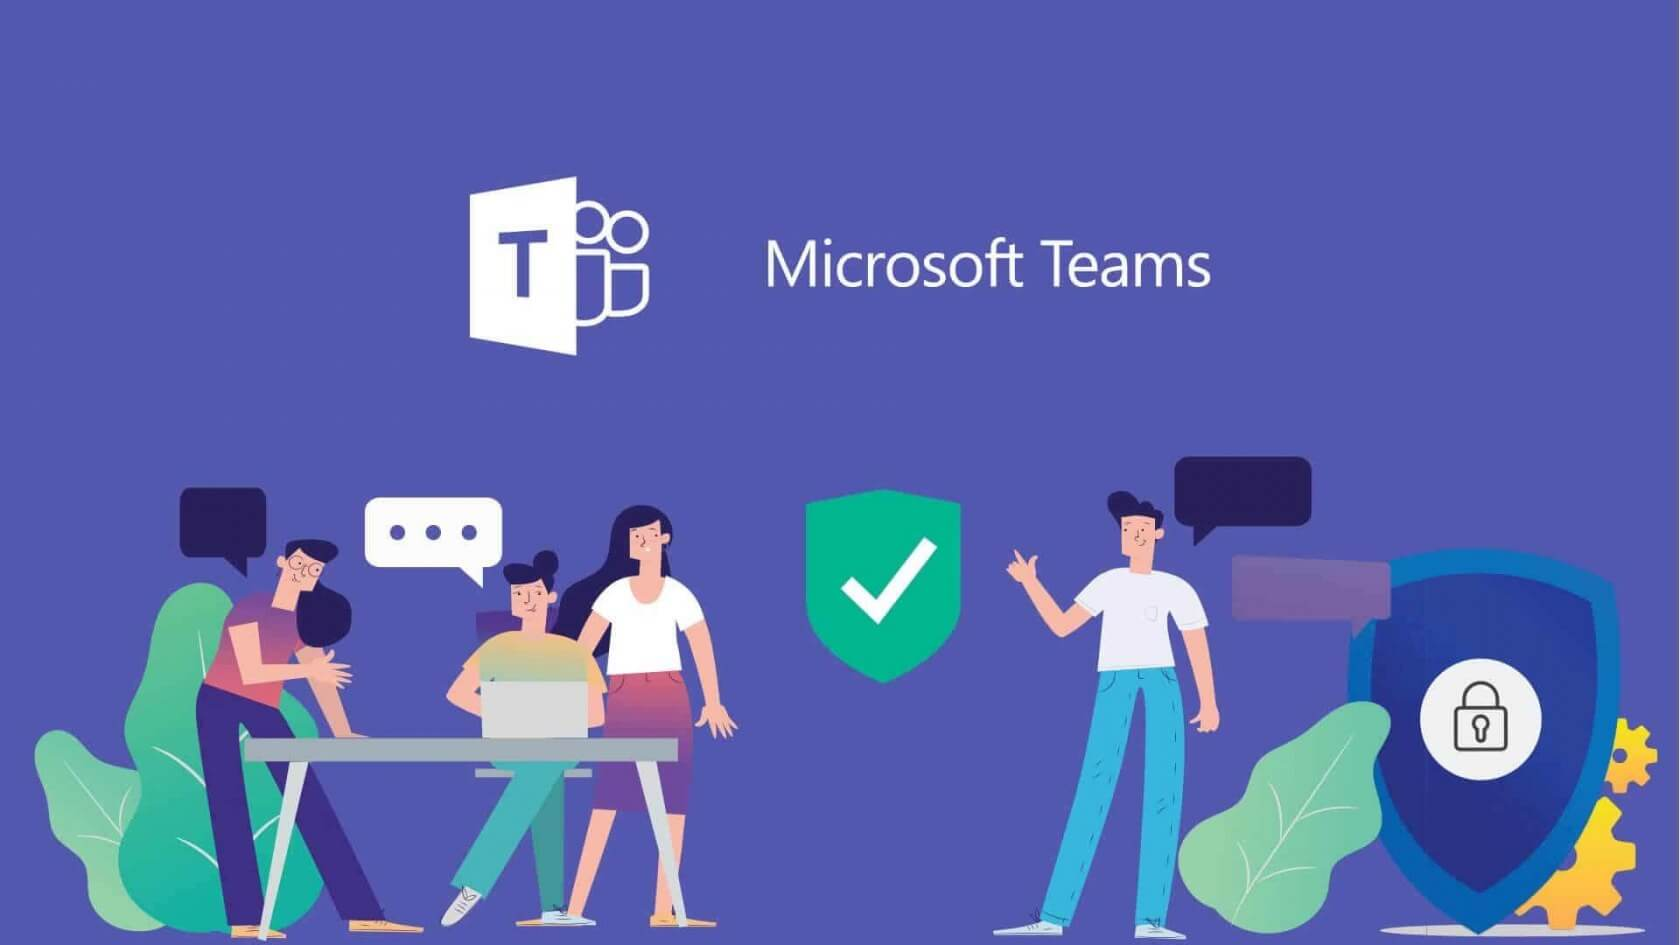 Microsoft Teams: Linux users get an early Christmas gift